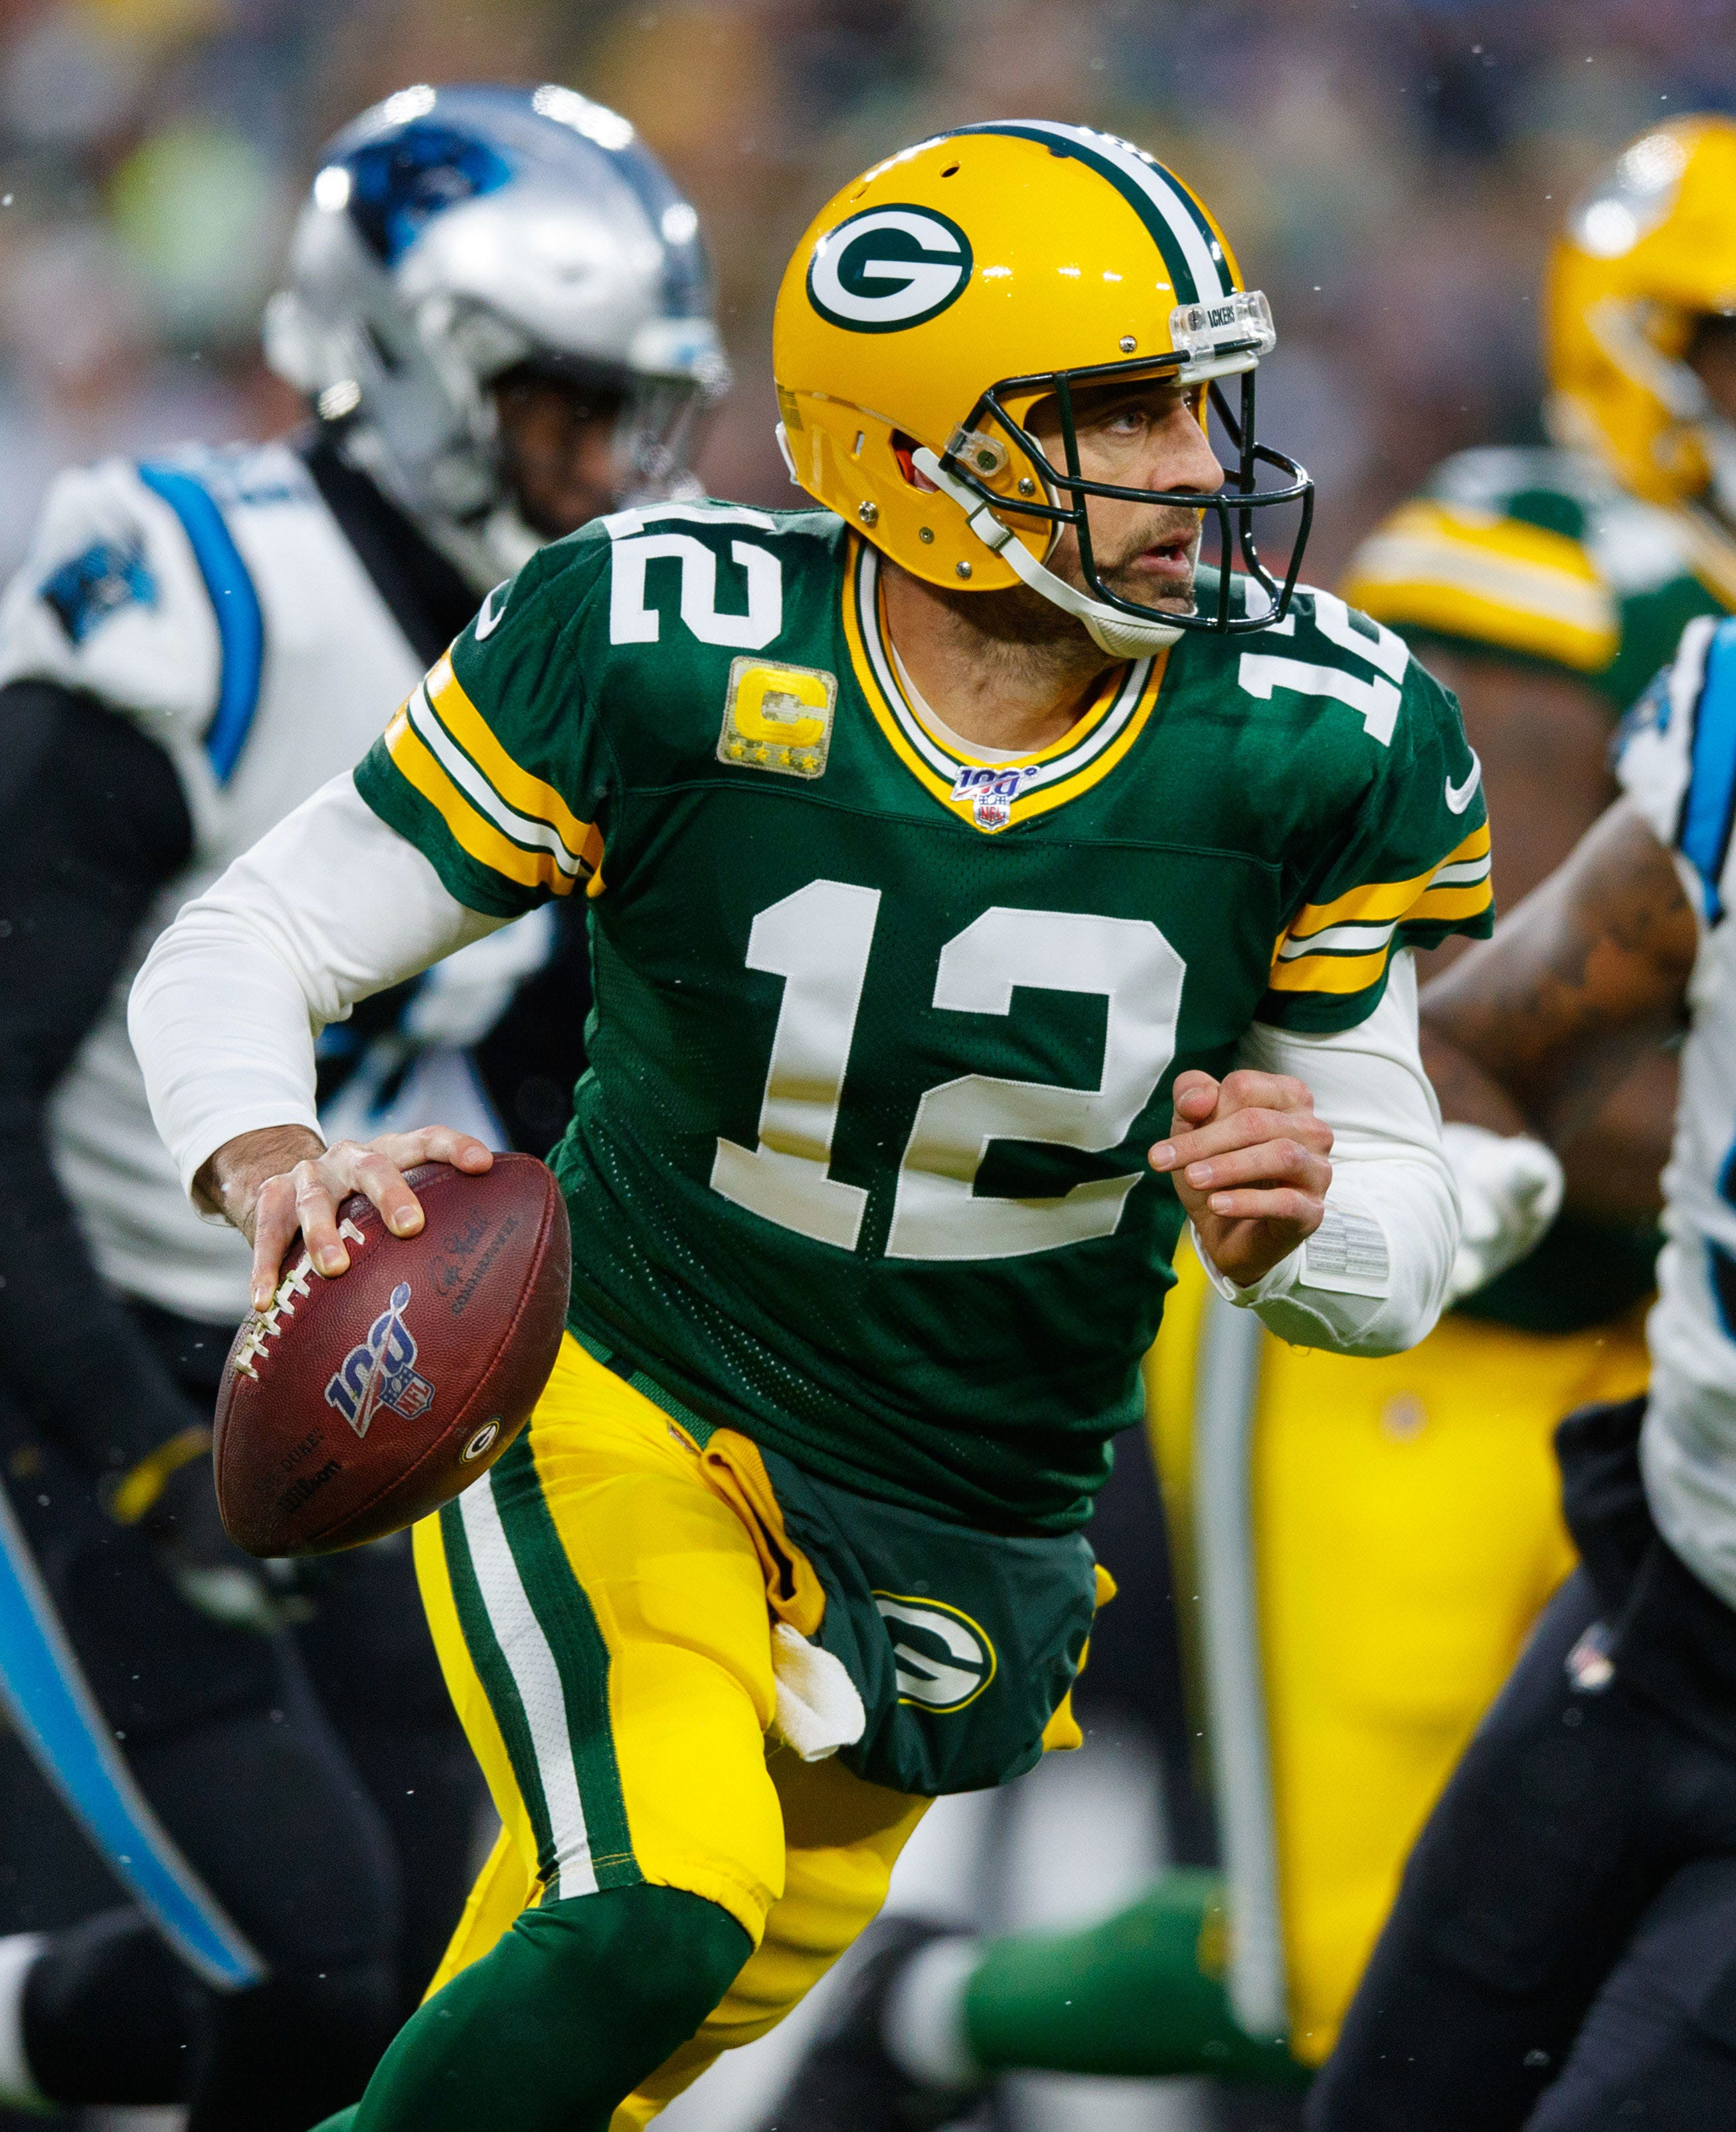 Fantasy football rankings for Week 12: Aaron Rodgers takes aim at stout 49ers defense